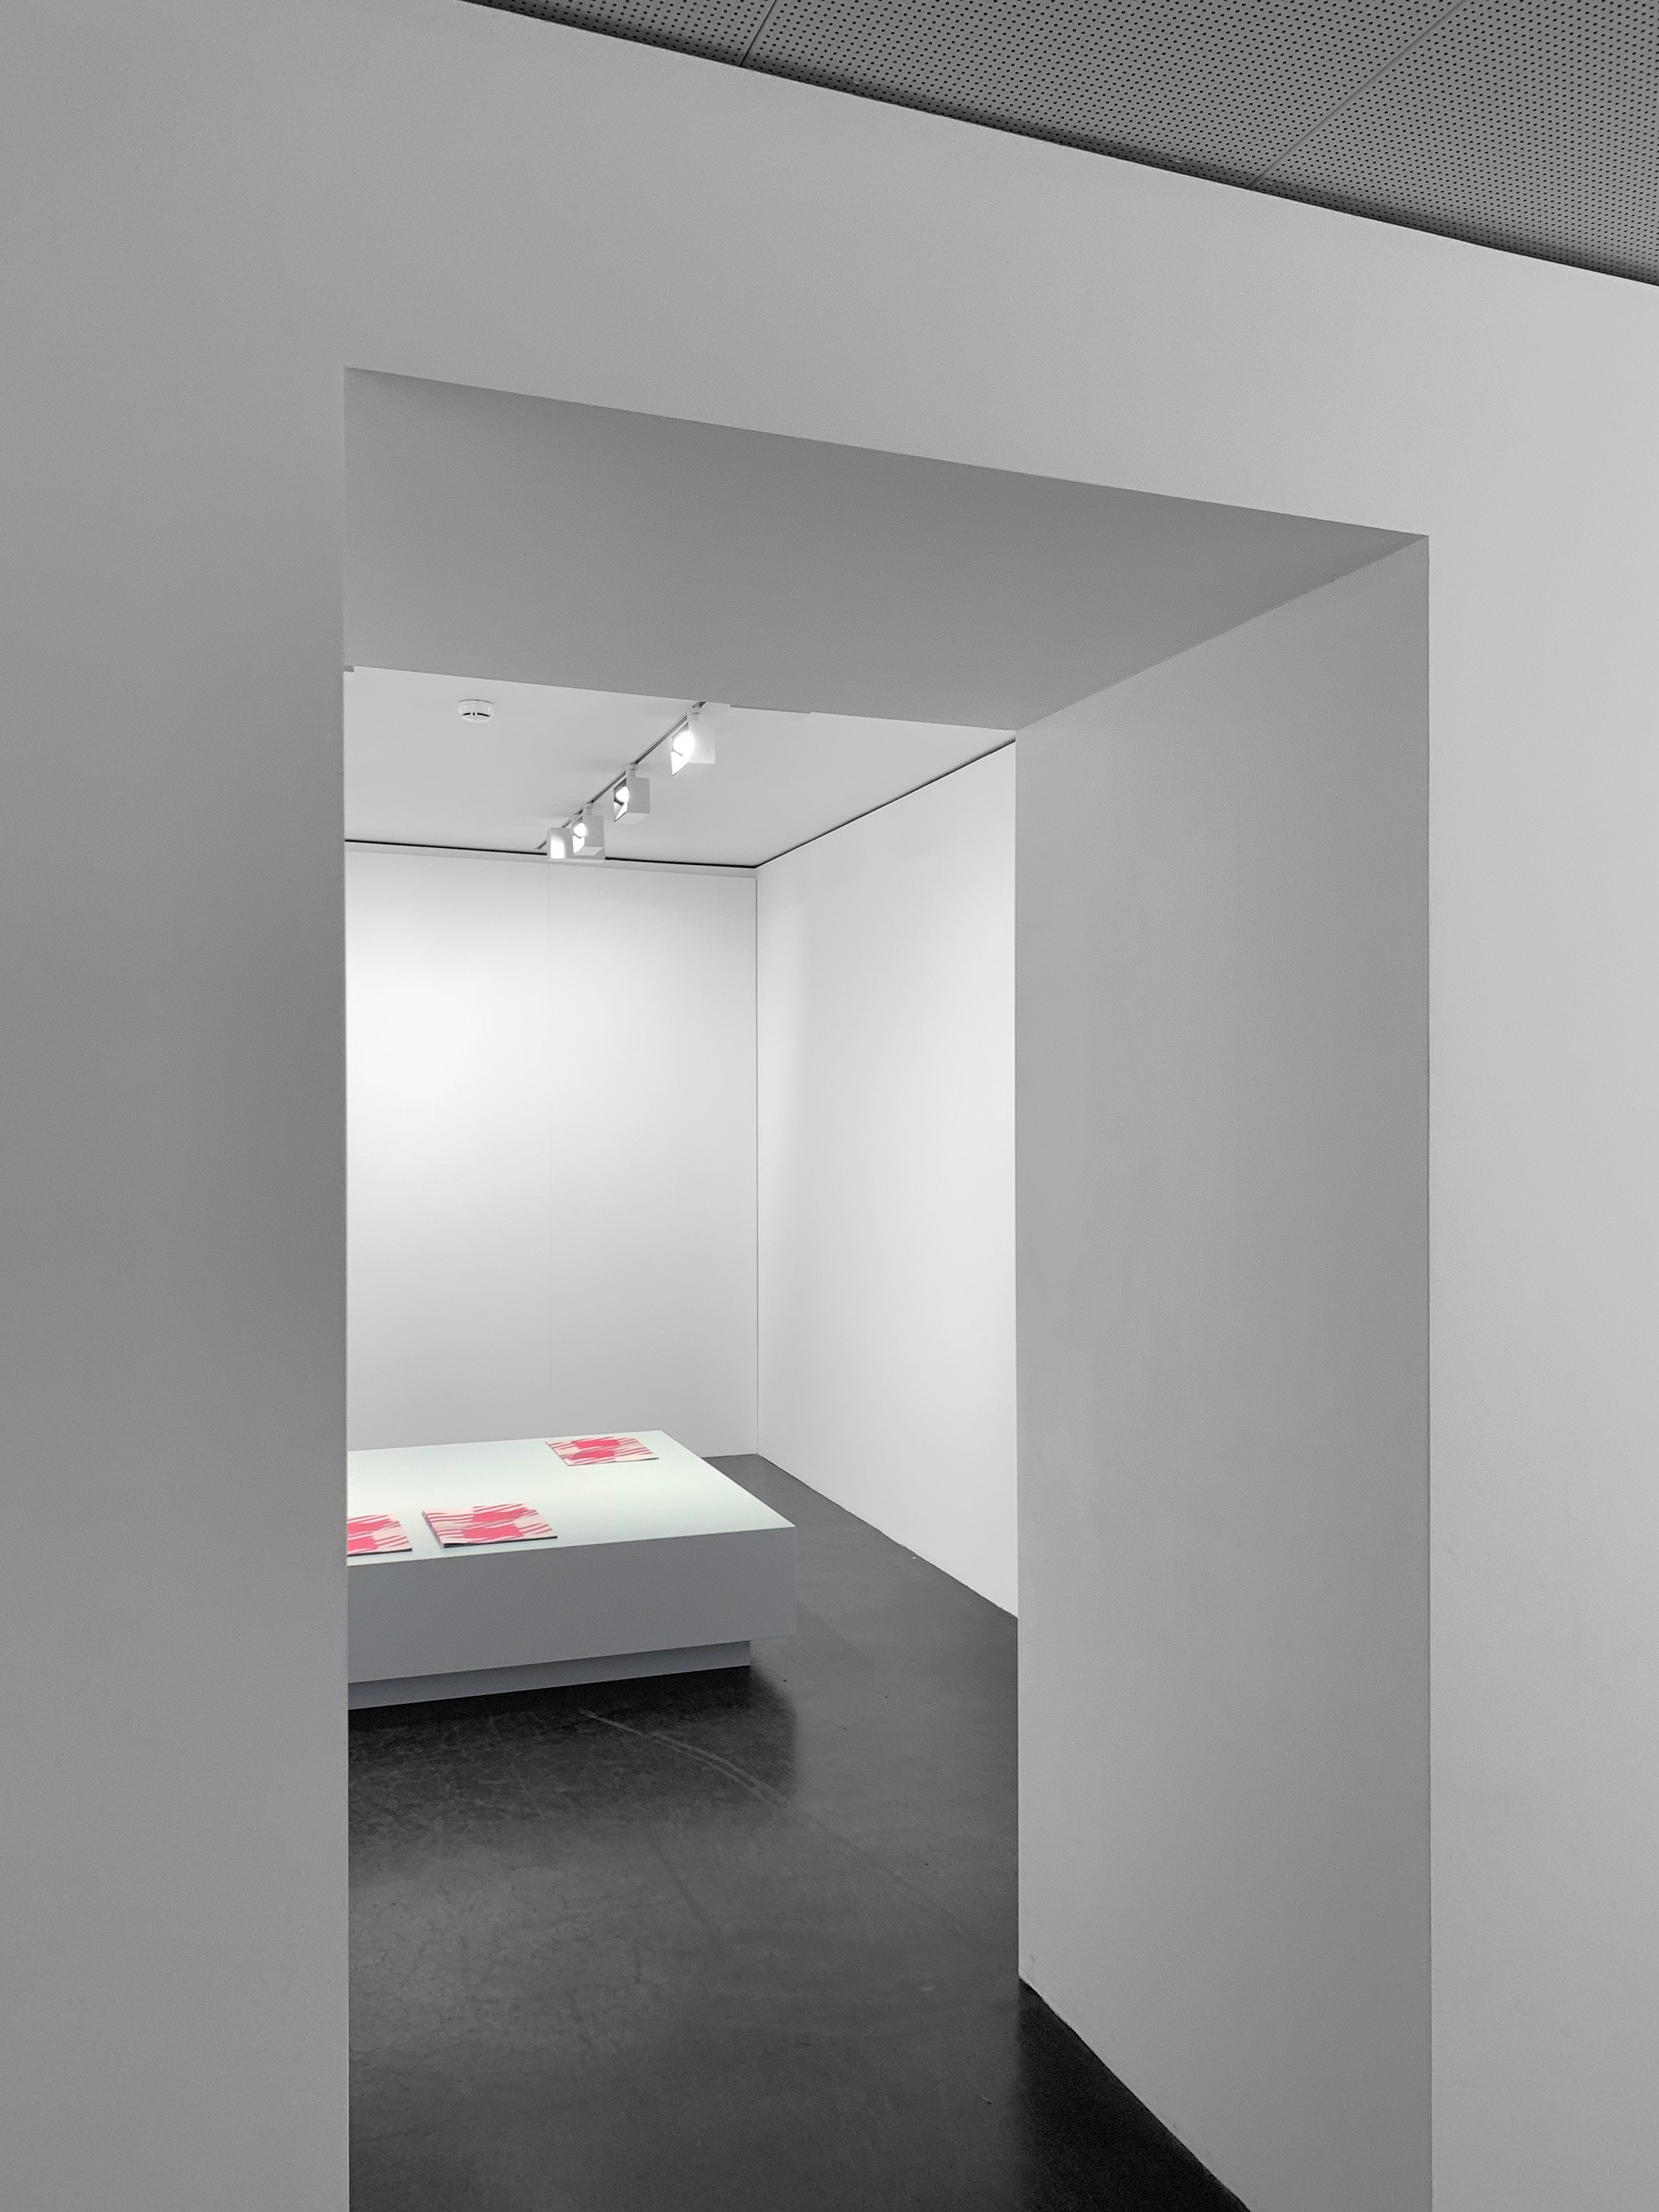 An Image, Installation view coalmine